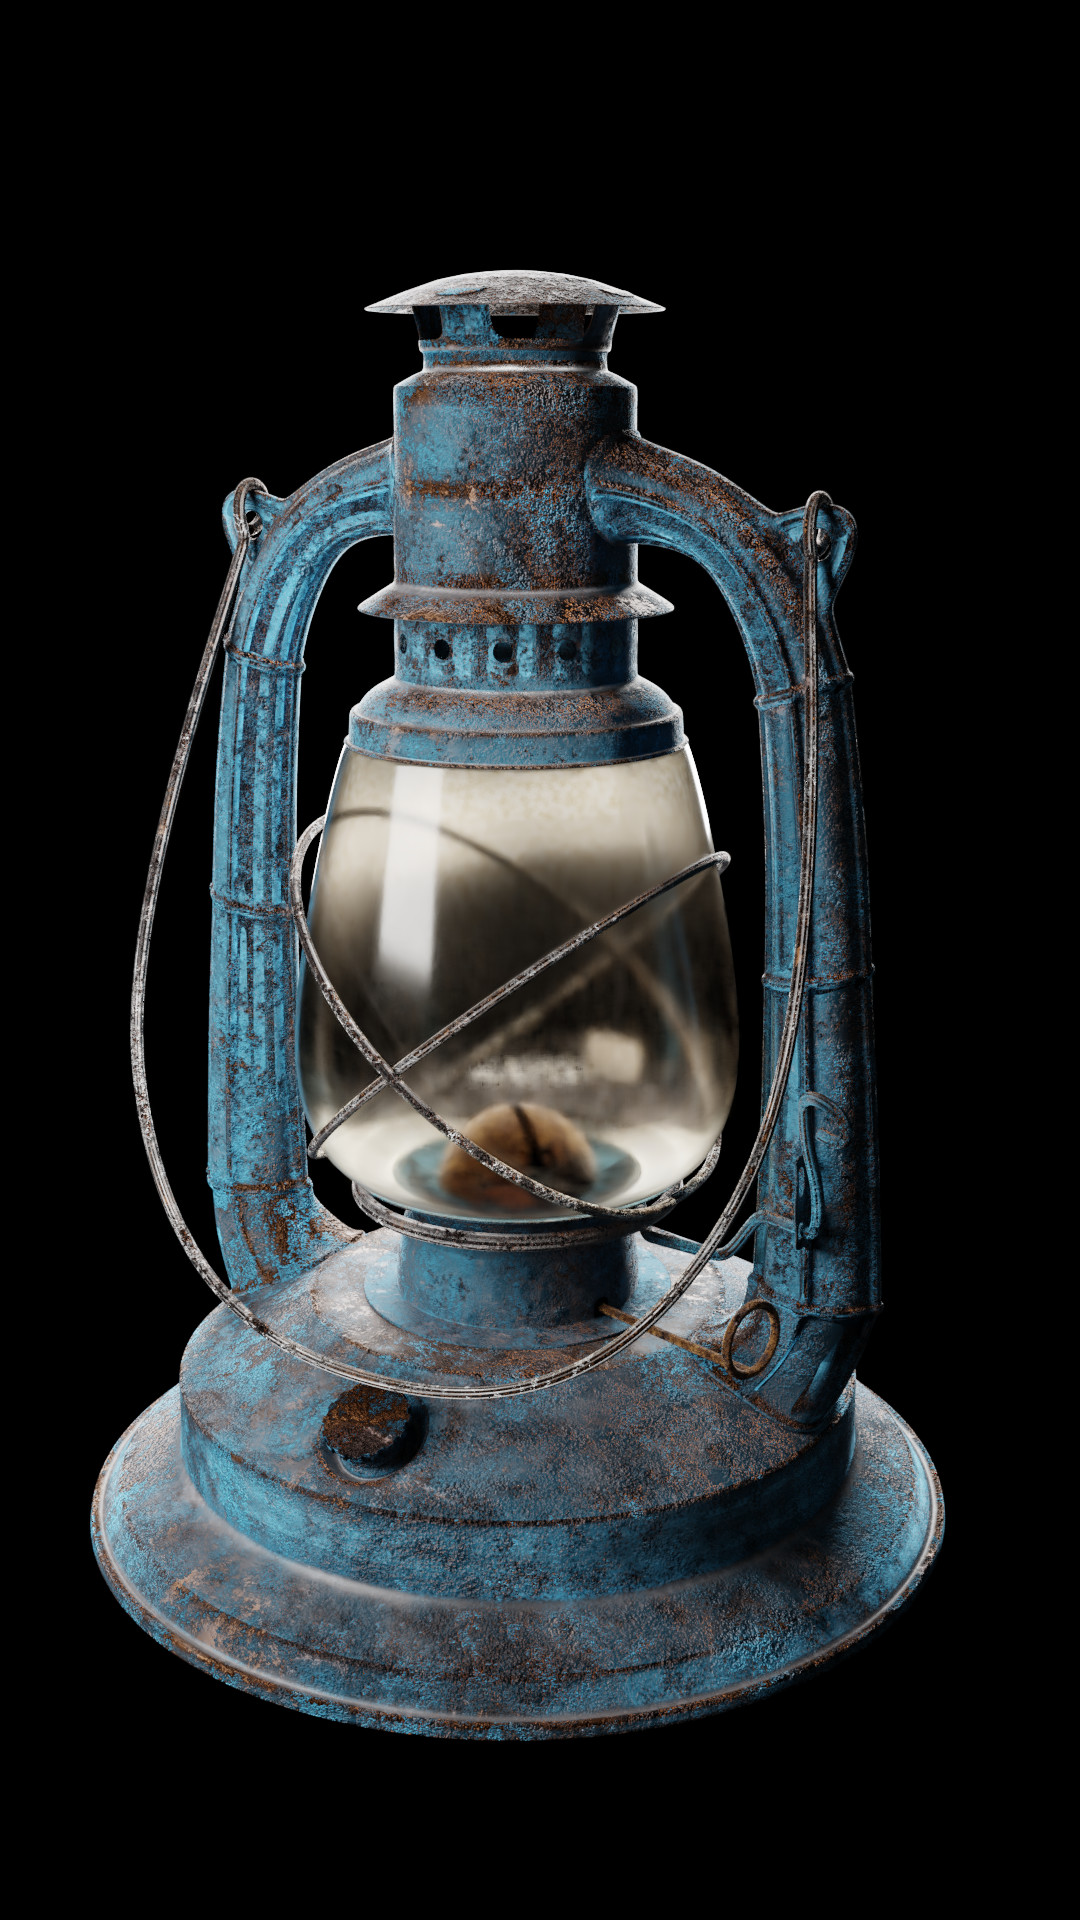 Finished result of texturing Lantern